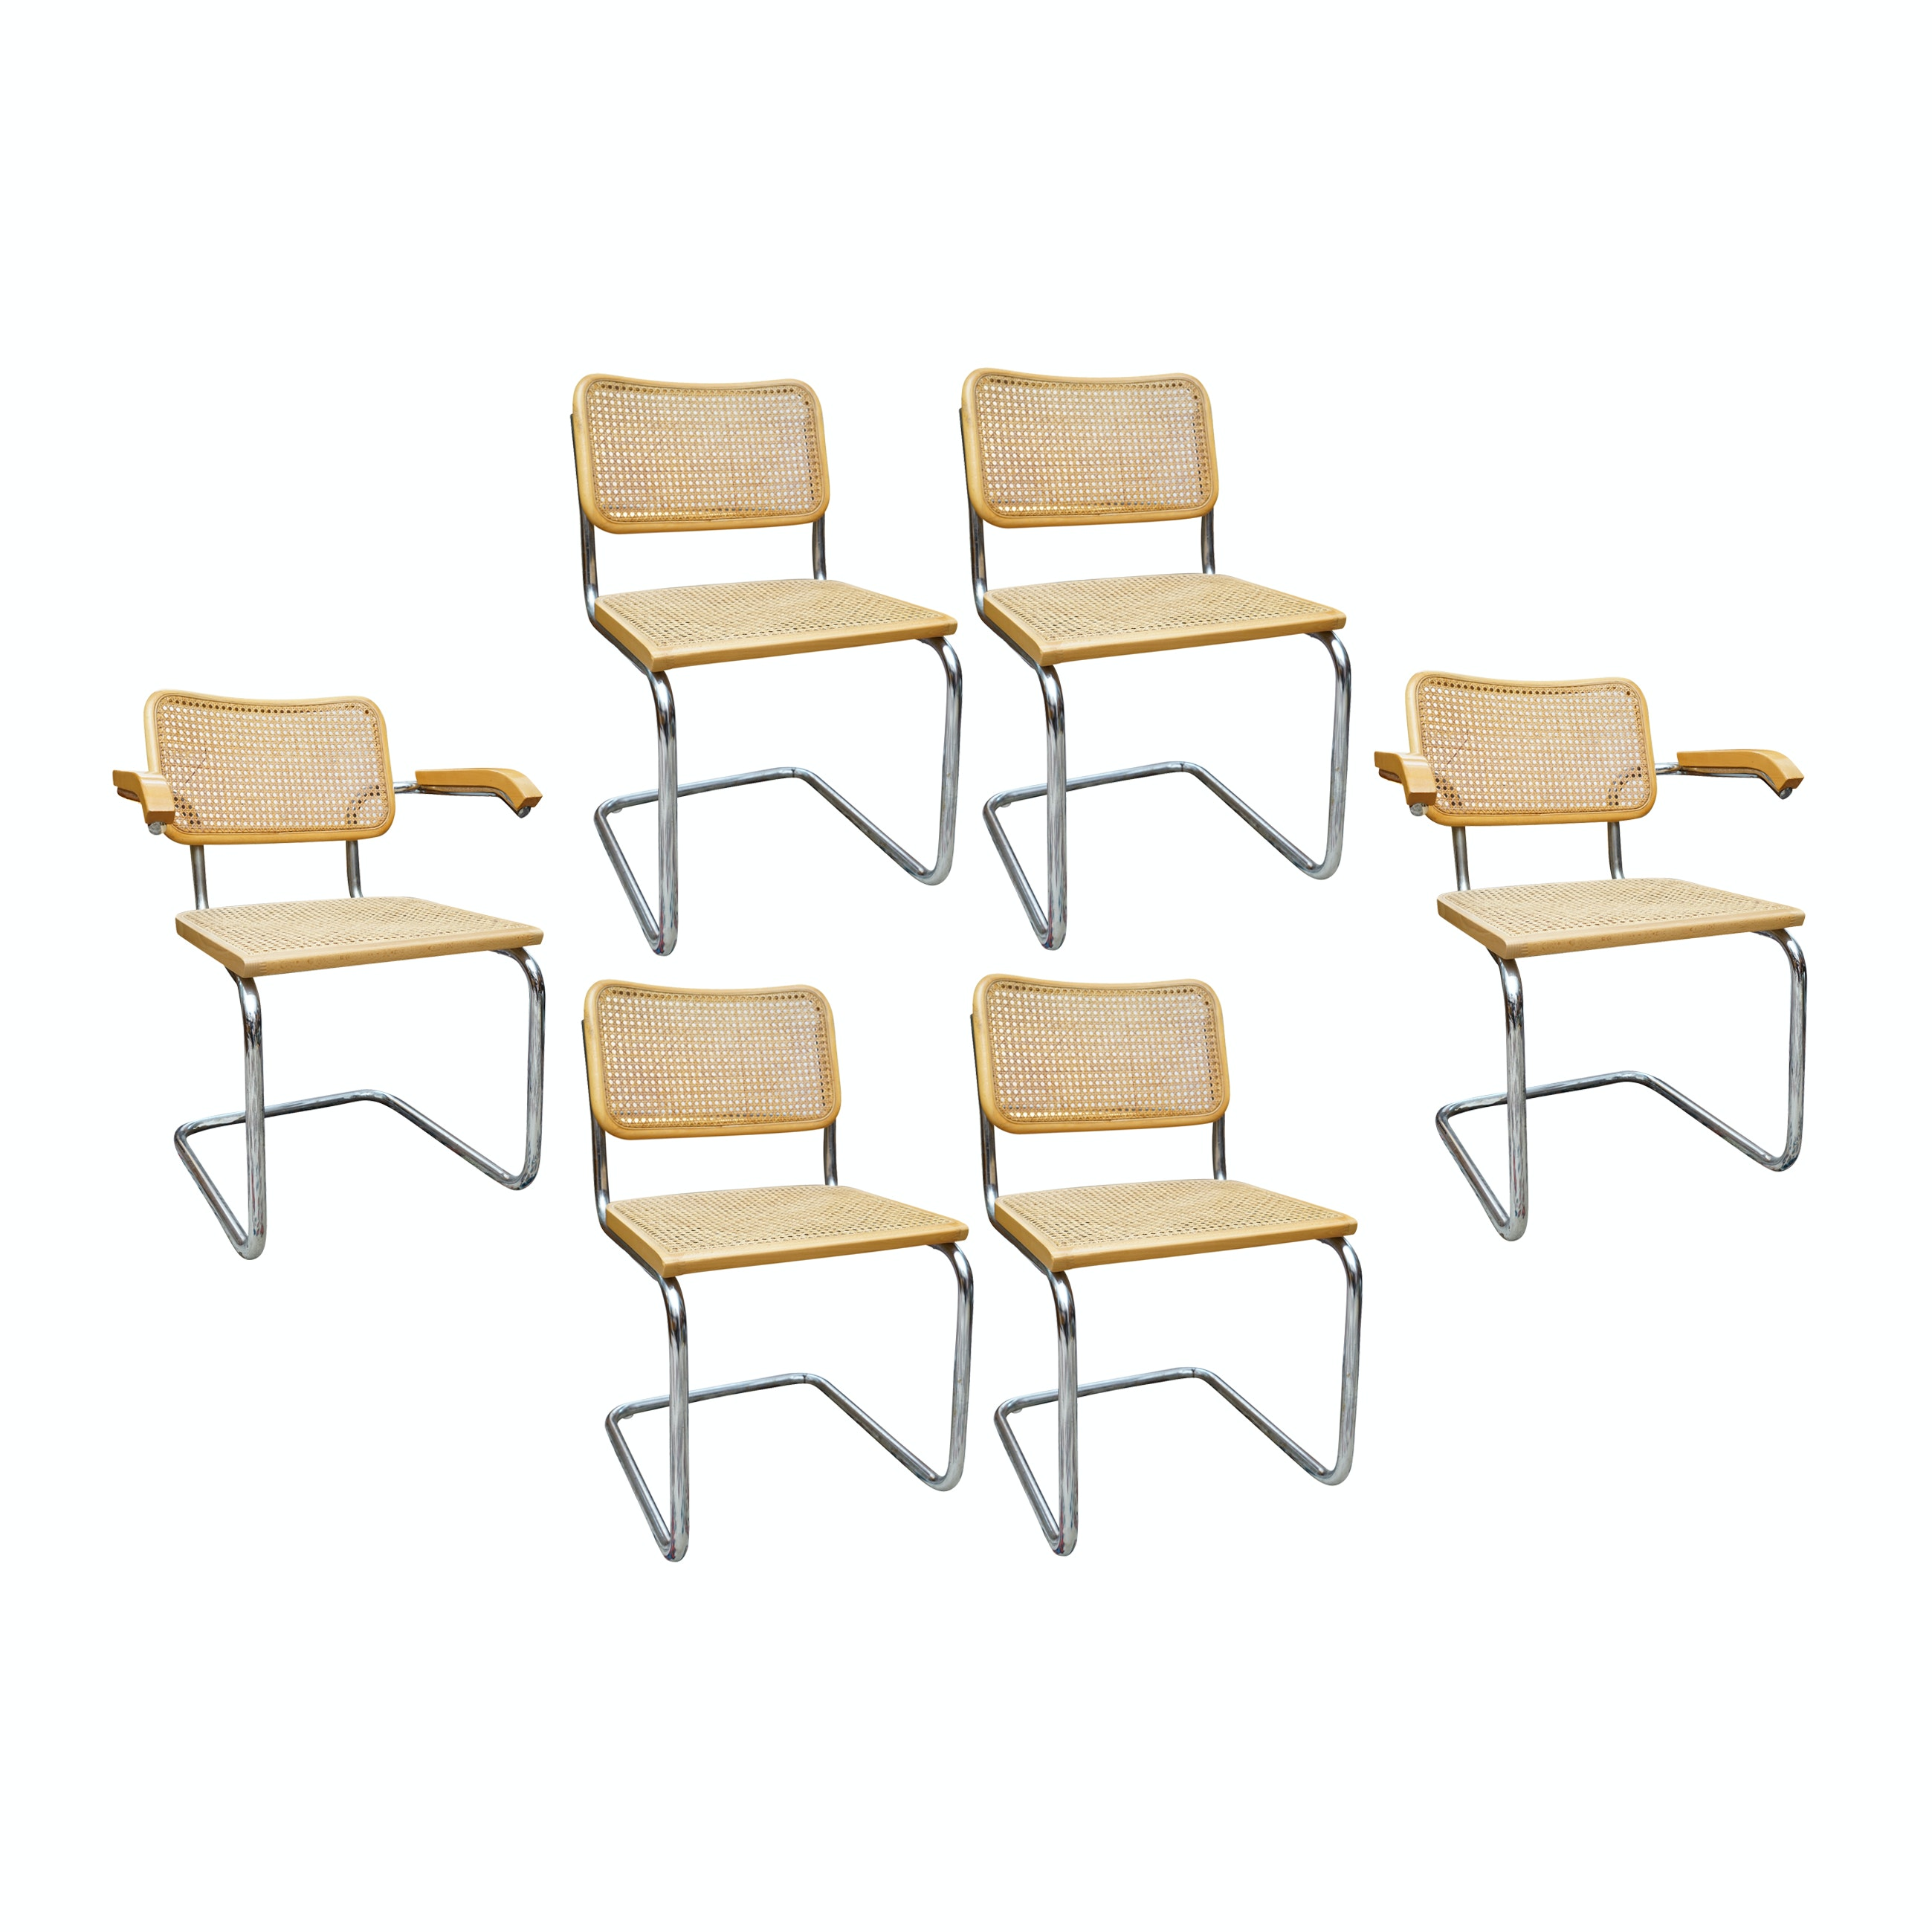 Cesca Style Chairs, Set of Six